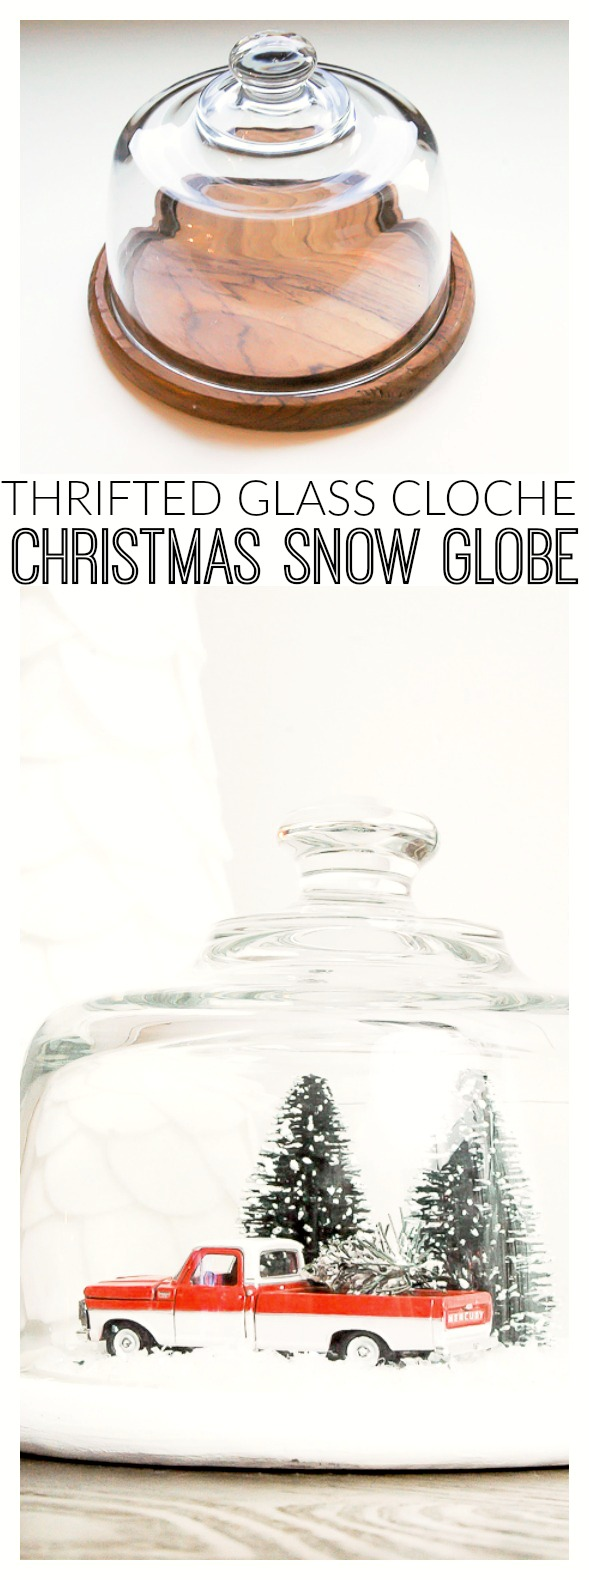 thrifted glass cloche turned Christmas snow globe